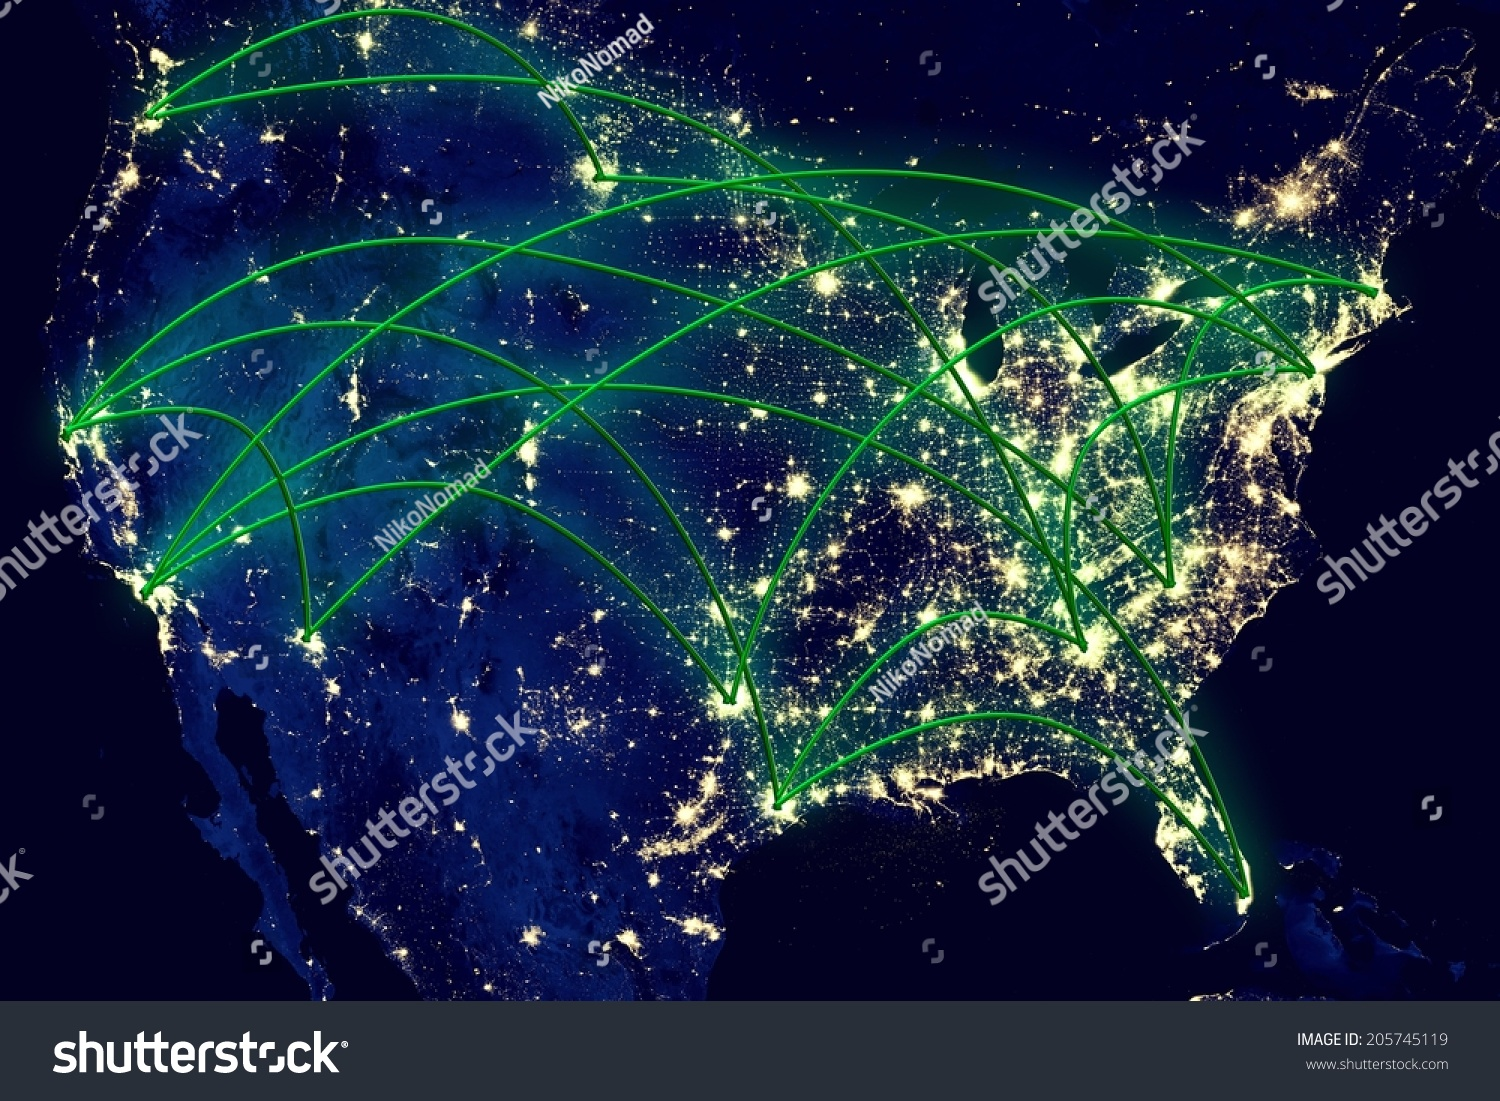 United states network night map space imagen de archivo stock united states network night map space imagen de archivo stock 205745119 shutterstock gumiabroncs Image collections